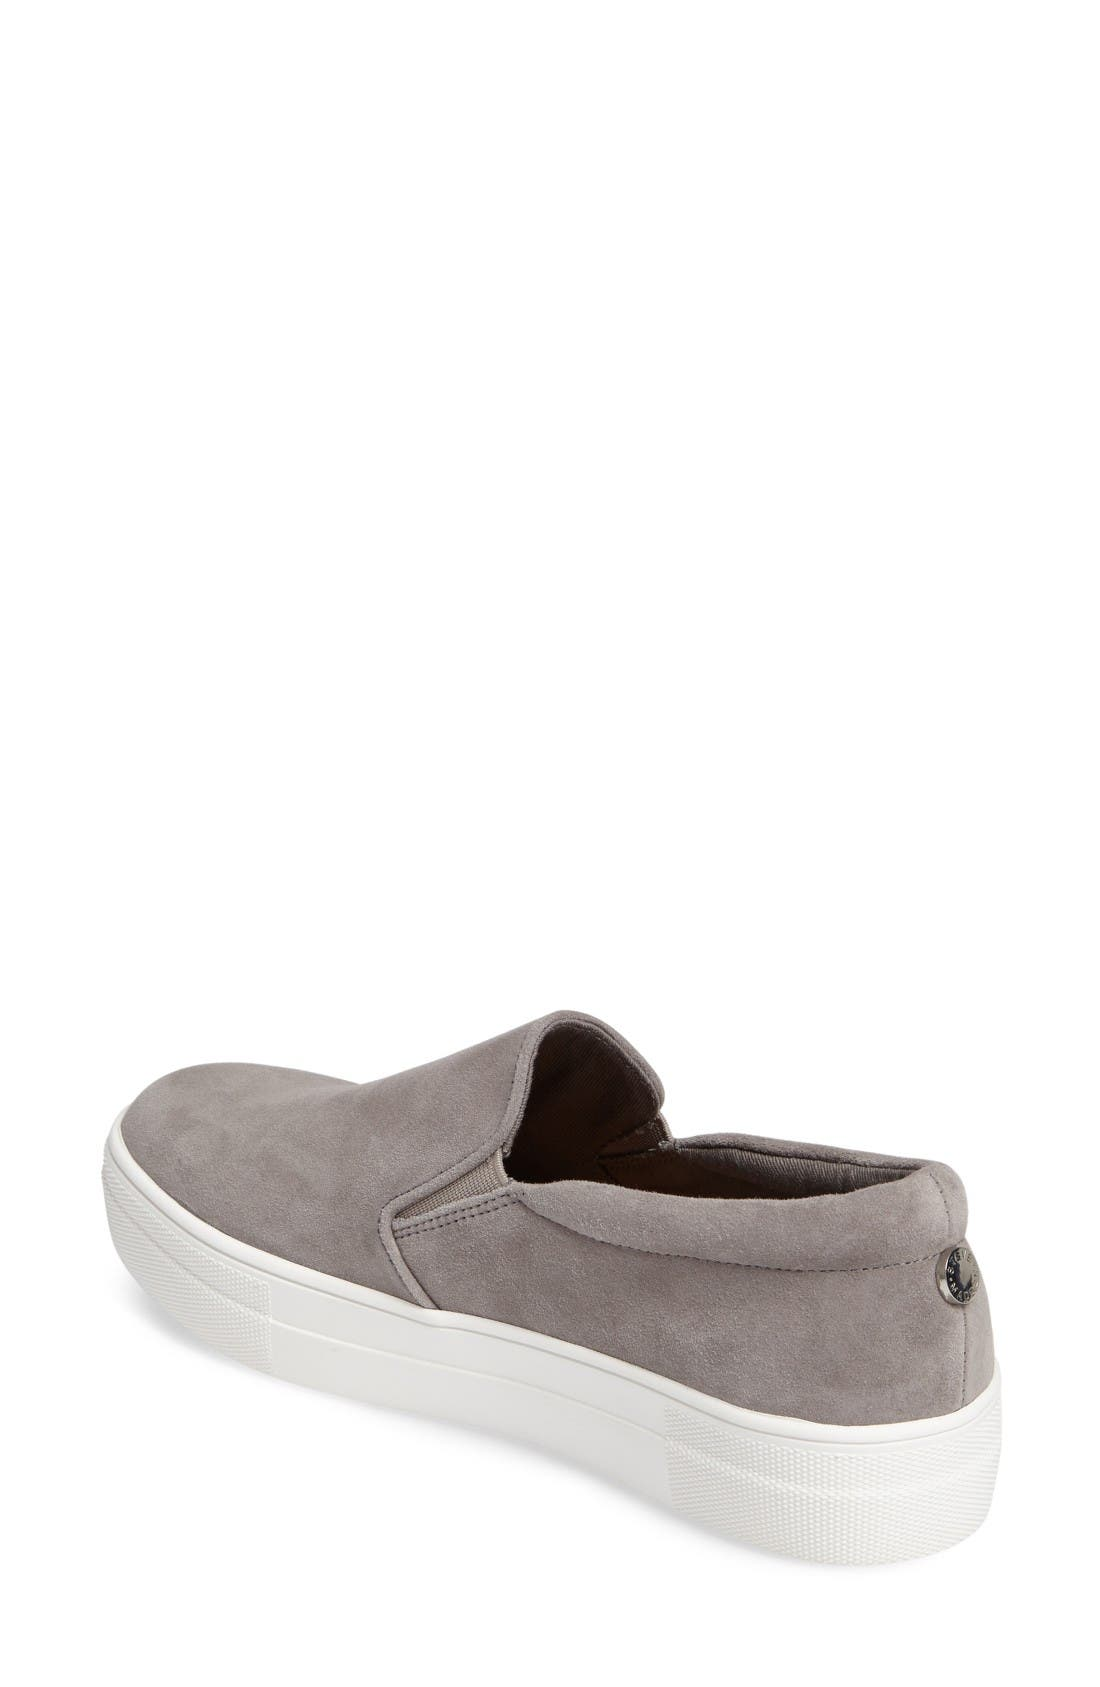 Gills Platform Slip-On Sneaker,                             Alternate thumbnail 2, color,                             Grey Suede